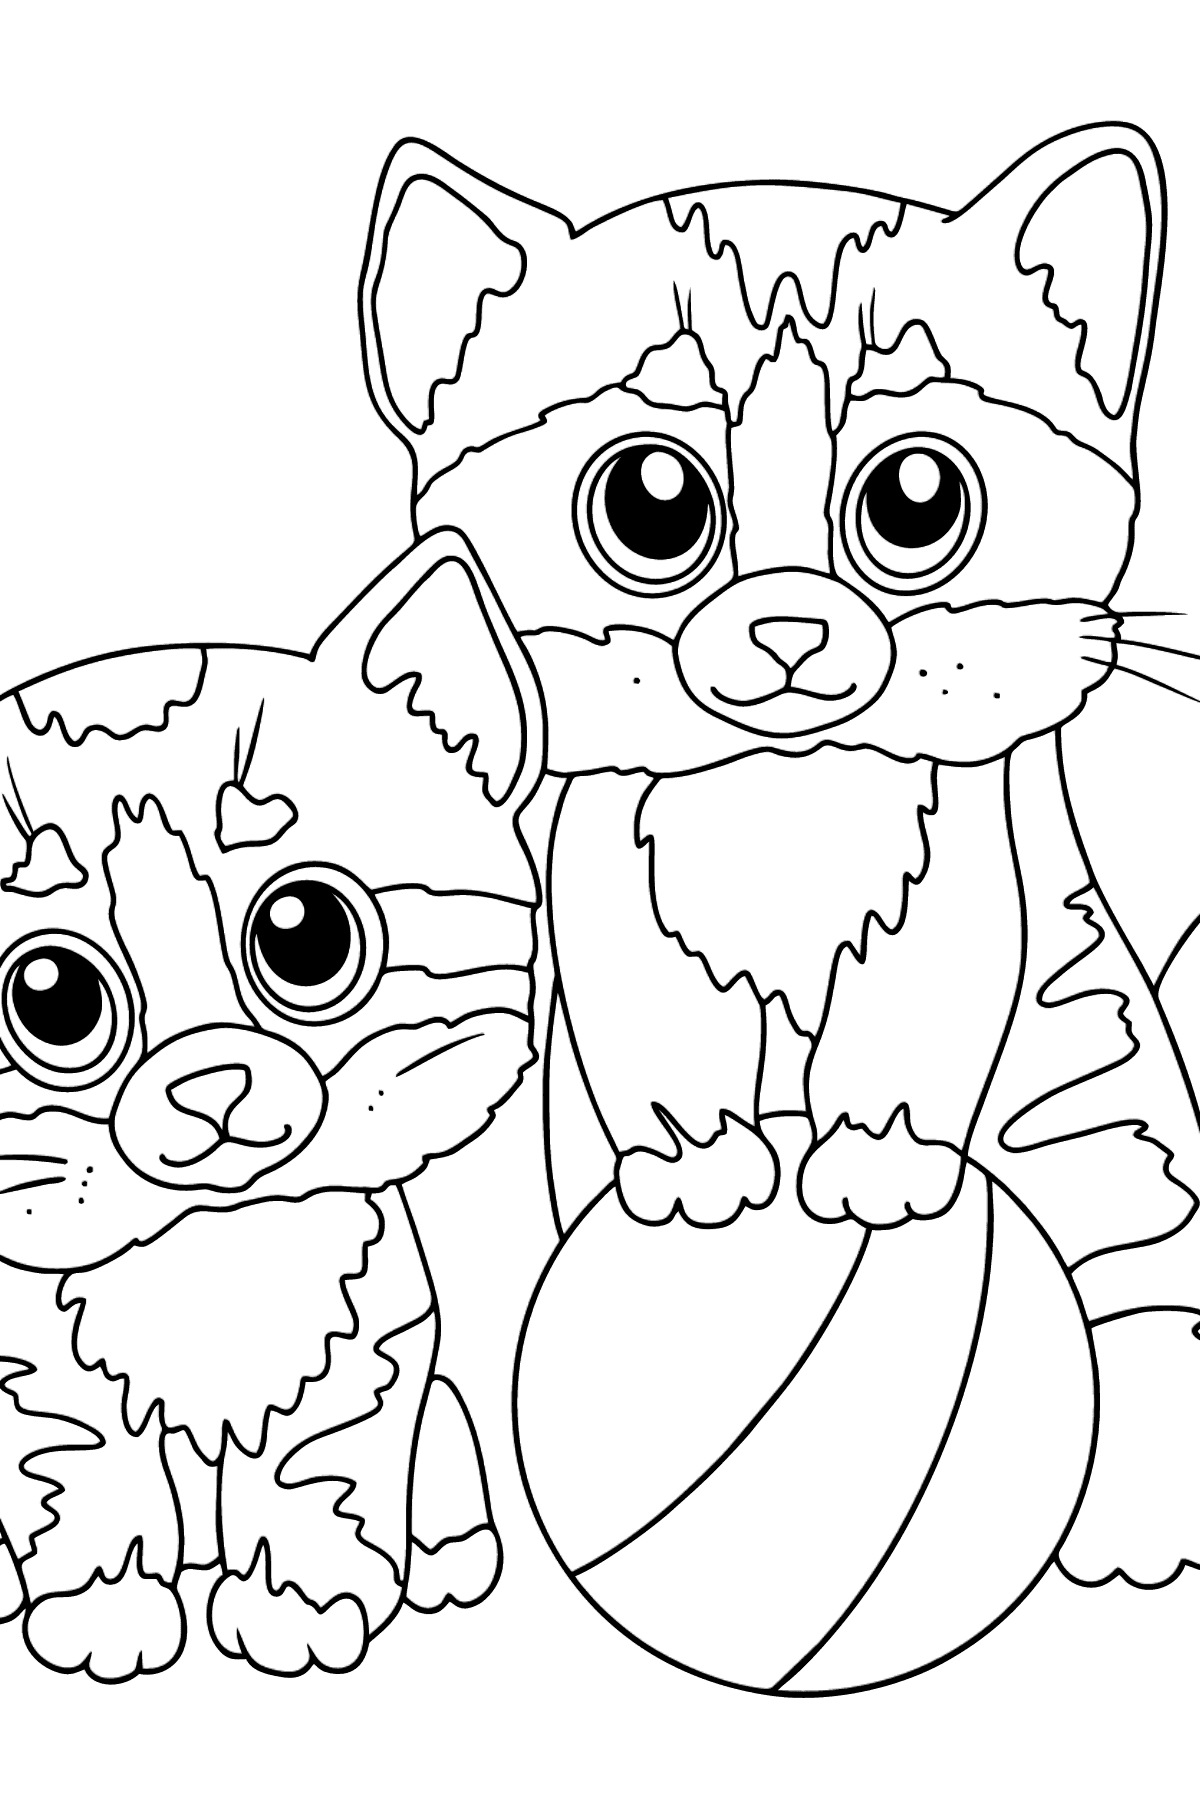 Coloring Page - Two Kittens with a Ball - Coloring Pages for Kids